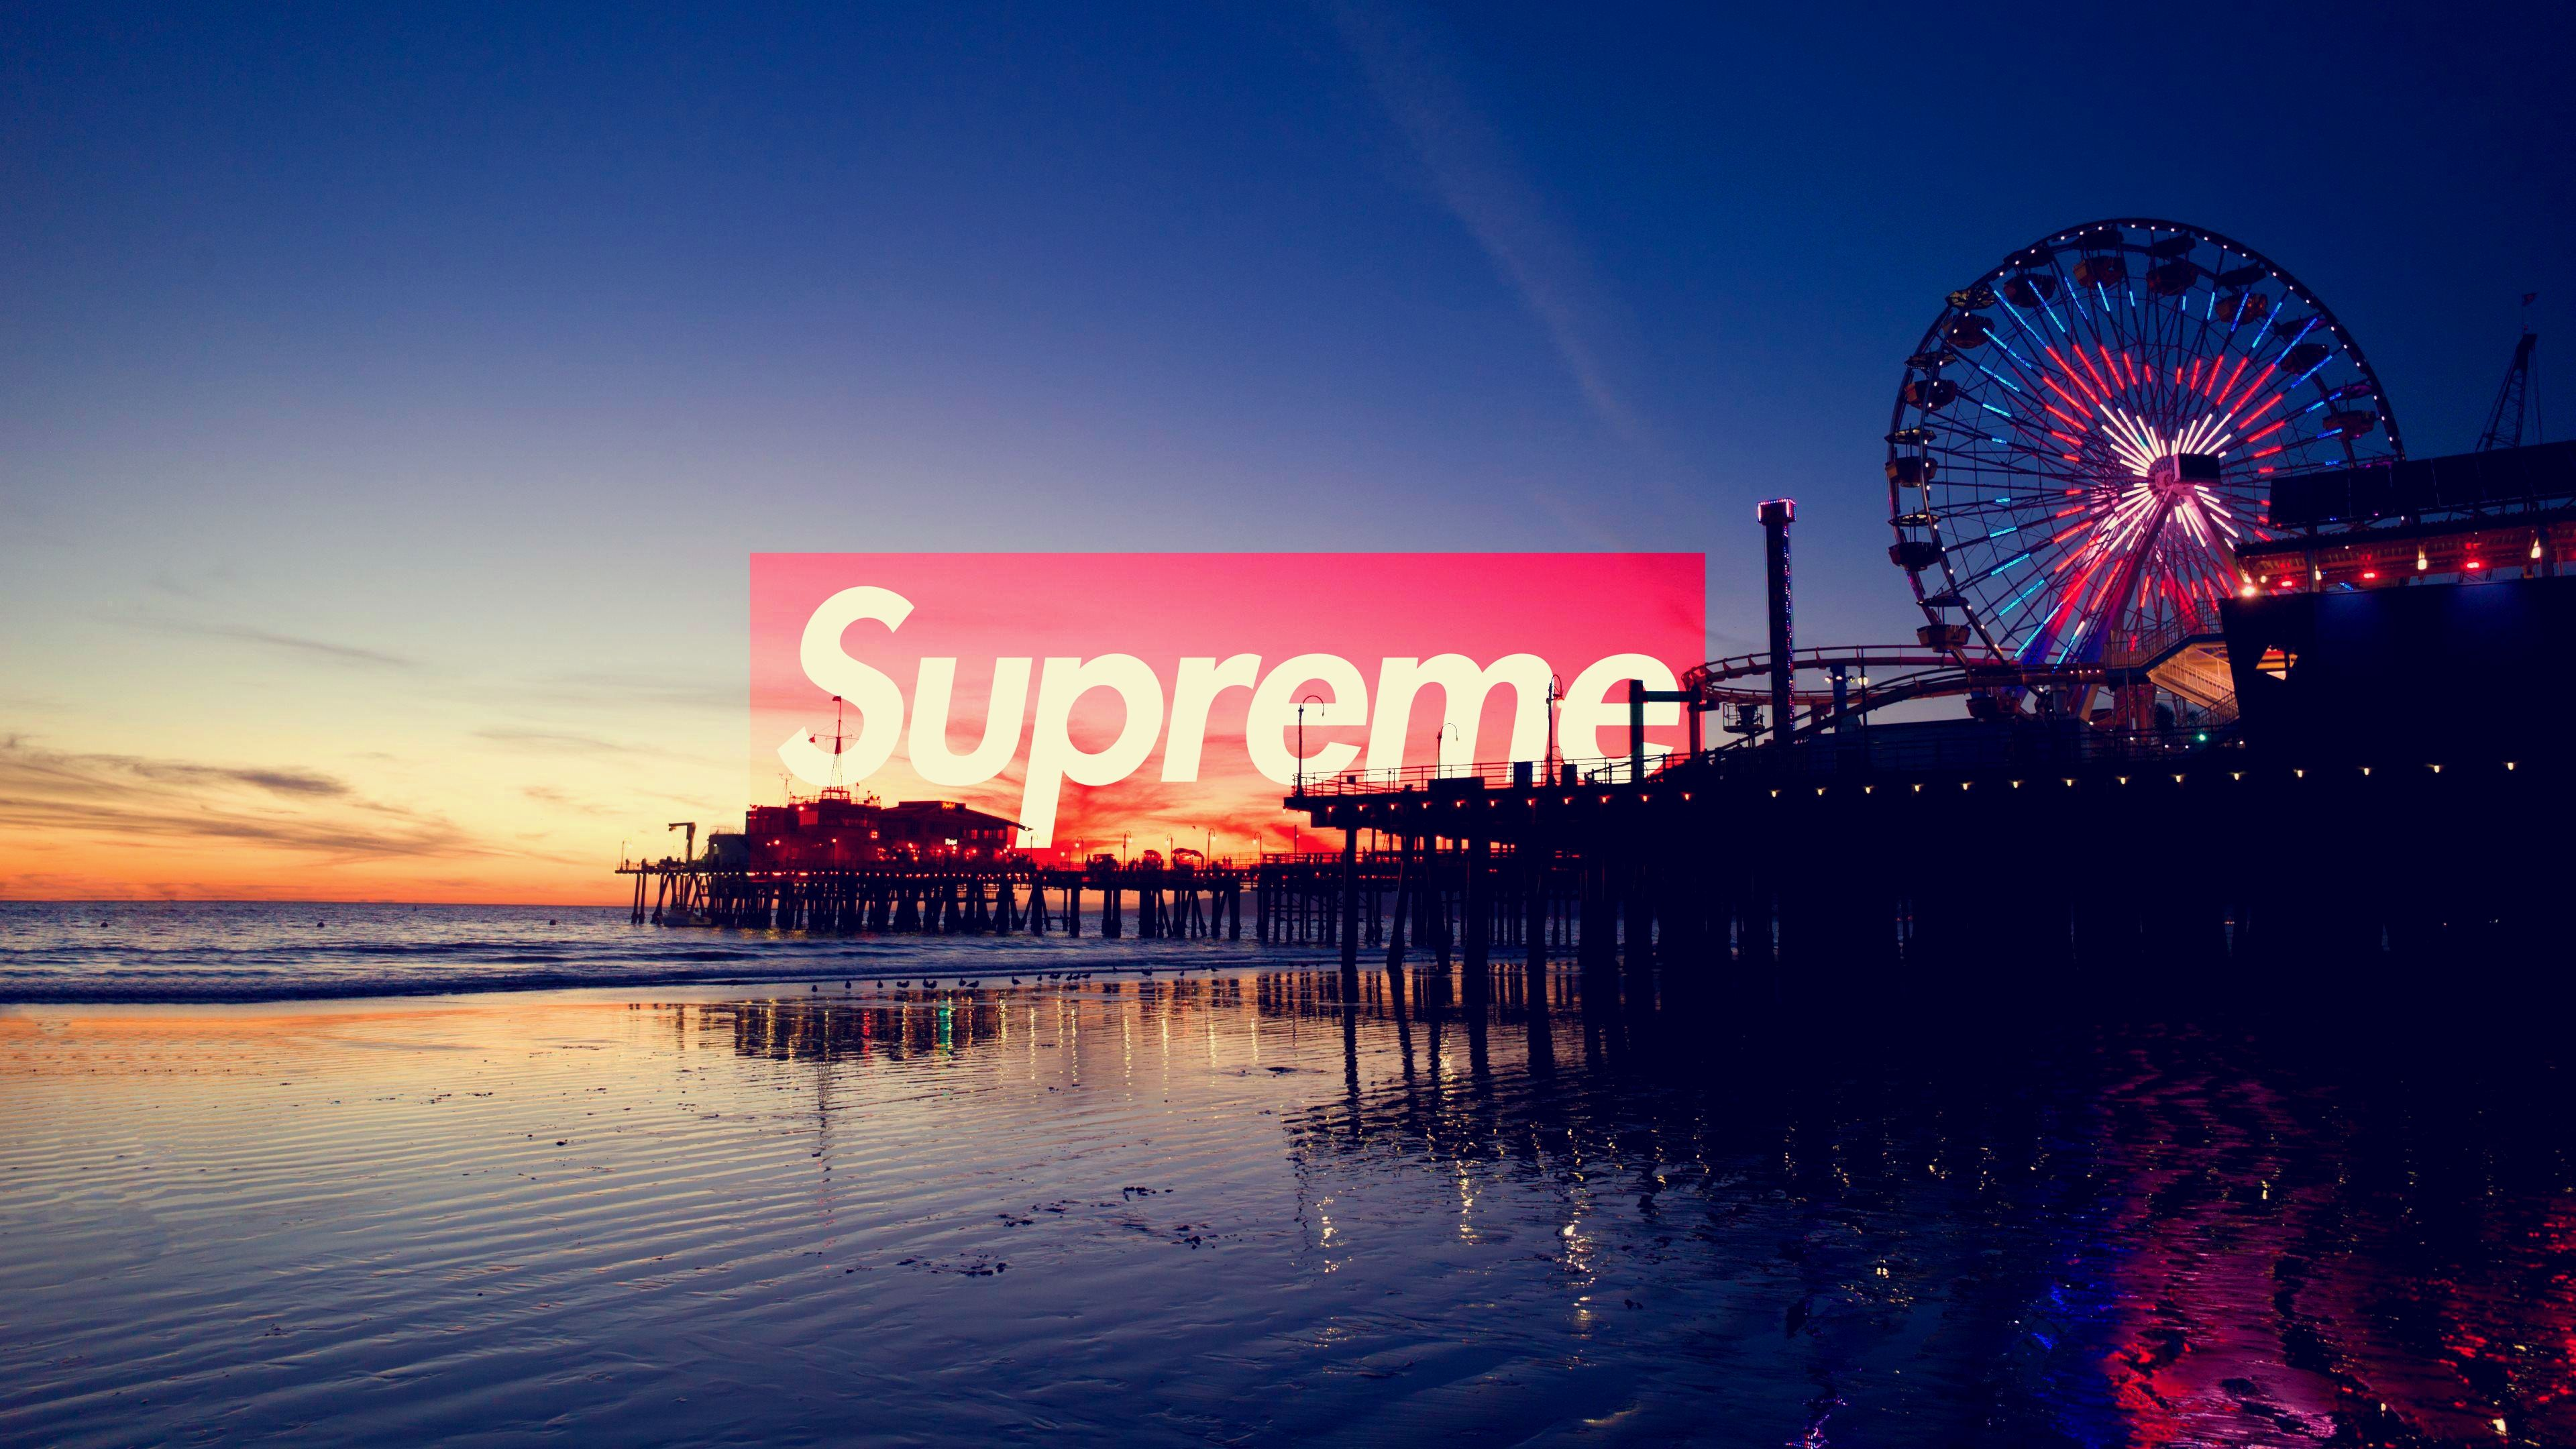 Supreme Los Angeles Supreme Wallpaper Laptop Wallpaper Supreme Iphone Wallpaper